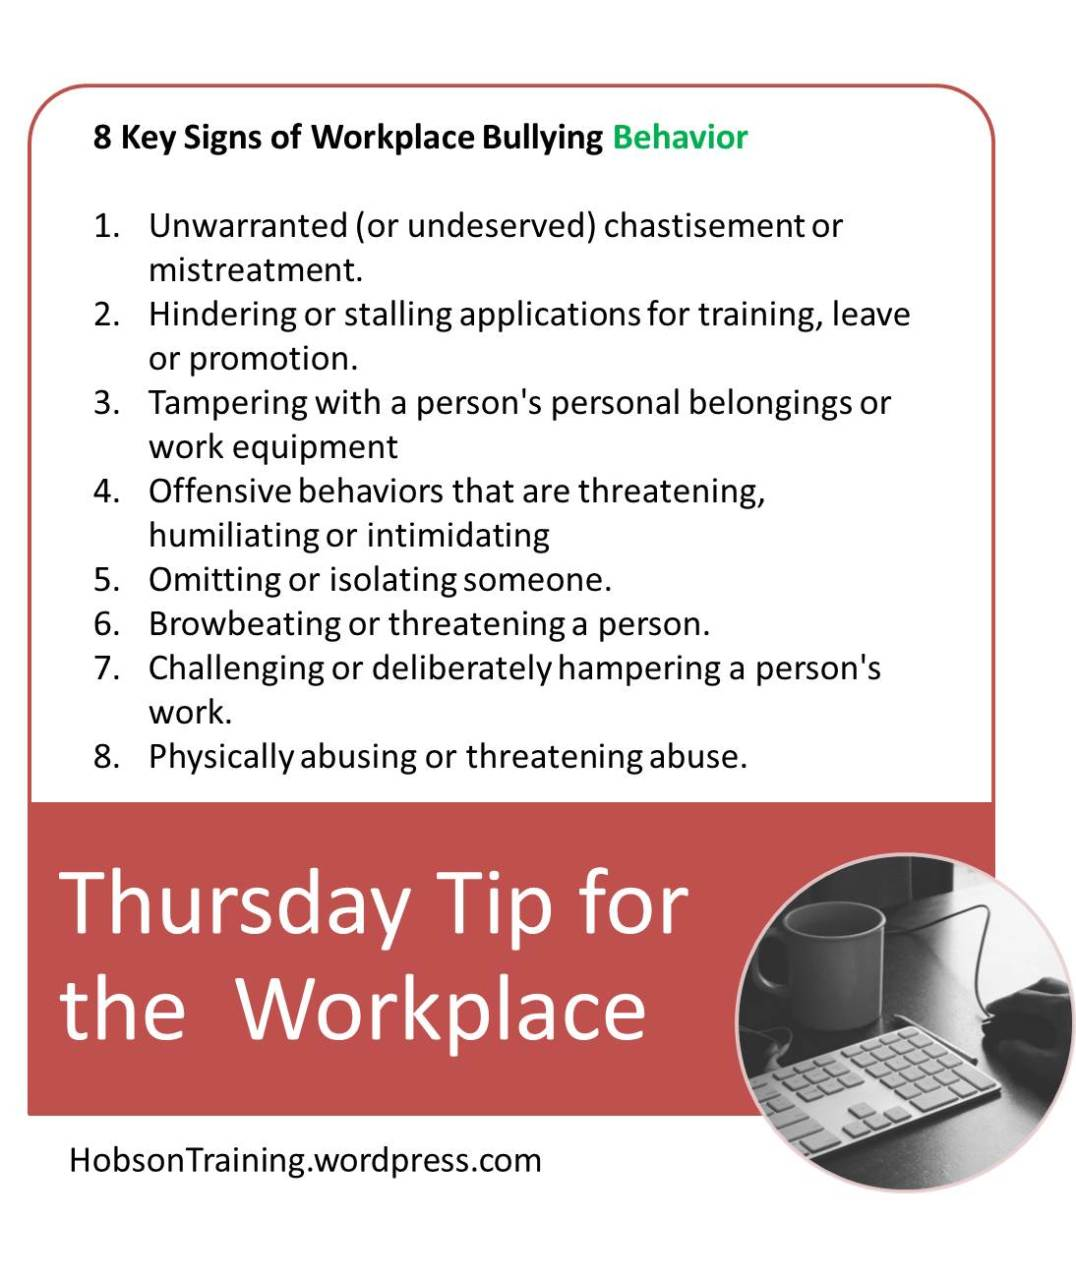 BPost - Thursday Tip 07-16-15 Bullying